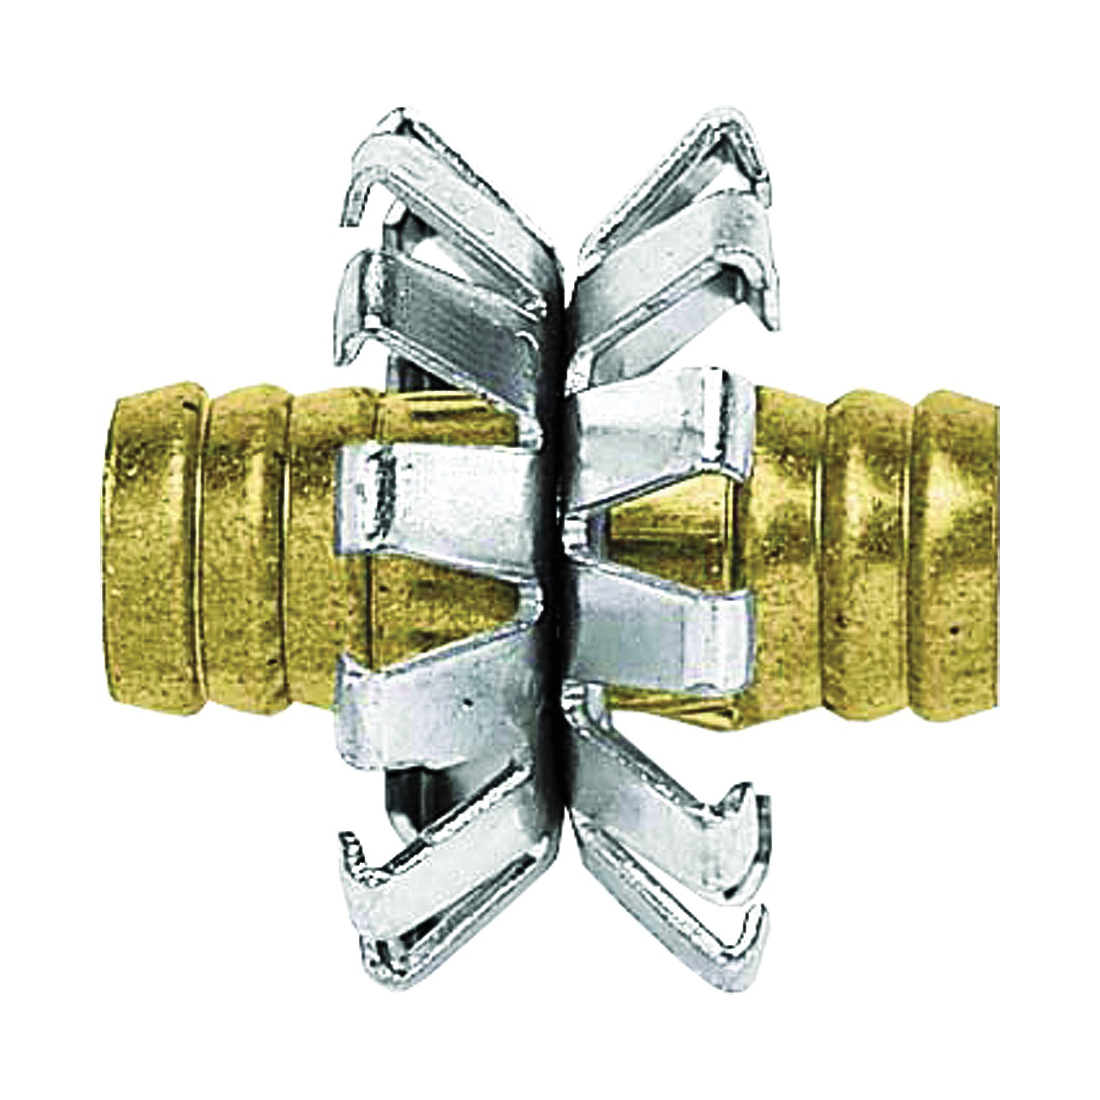 Picture of Gilmour 812154-1001 Heavy-Duty Clinch Hose Mender, 1/2 in, Brass